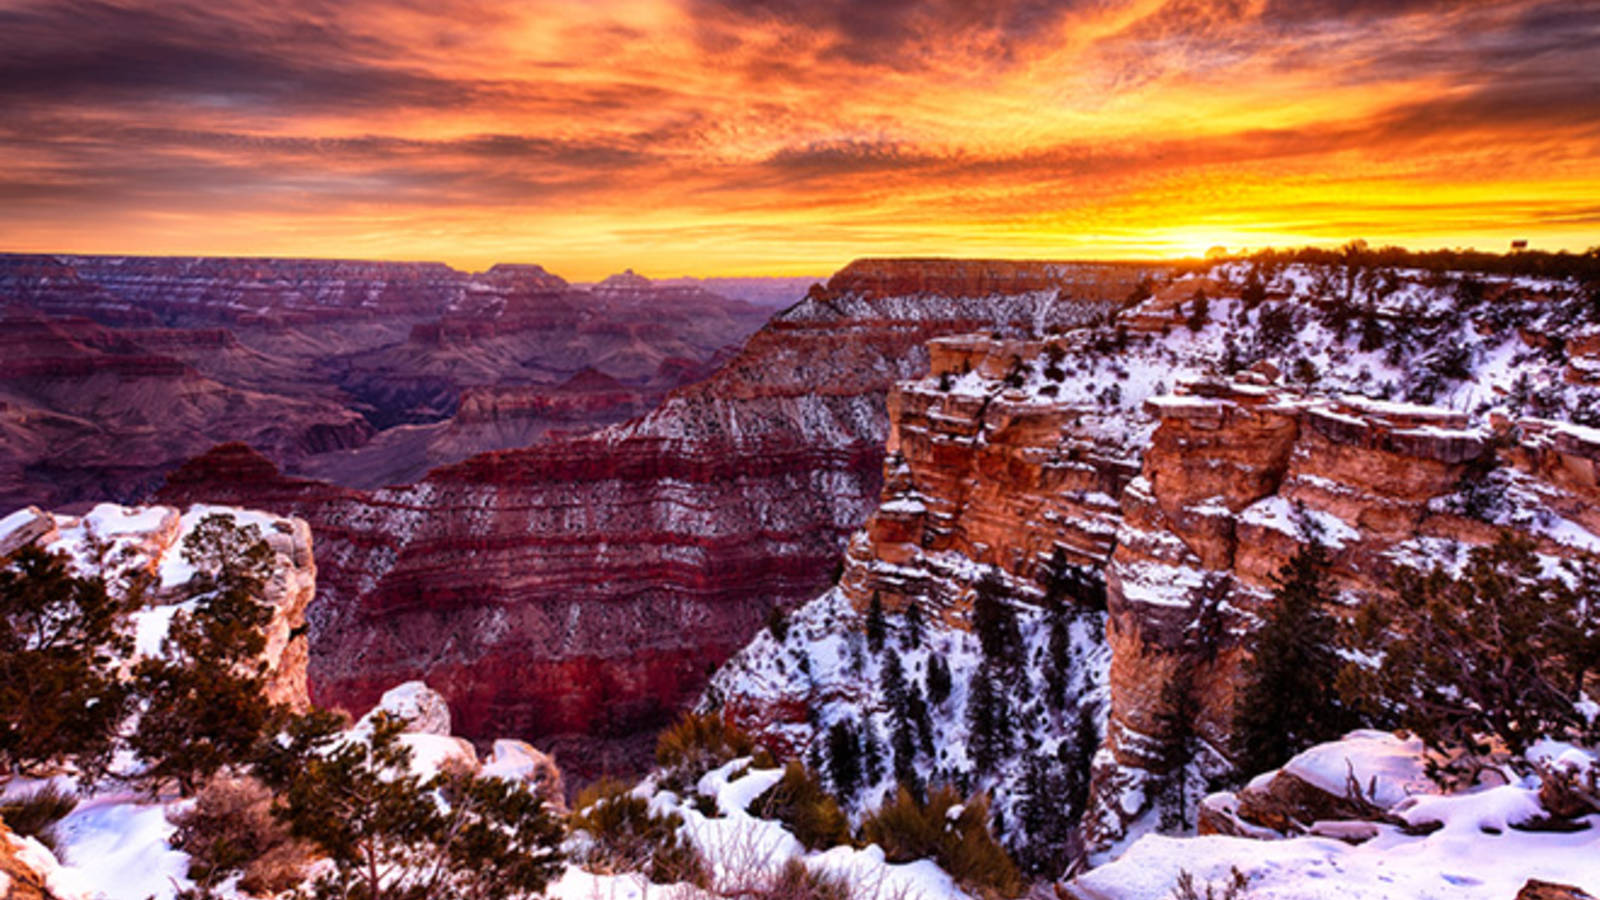 sunset at grand canyon in december